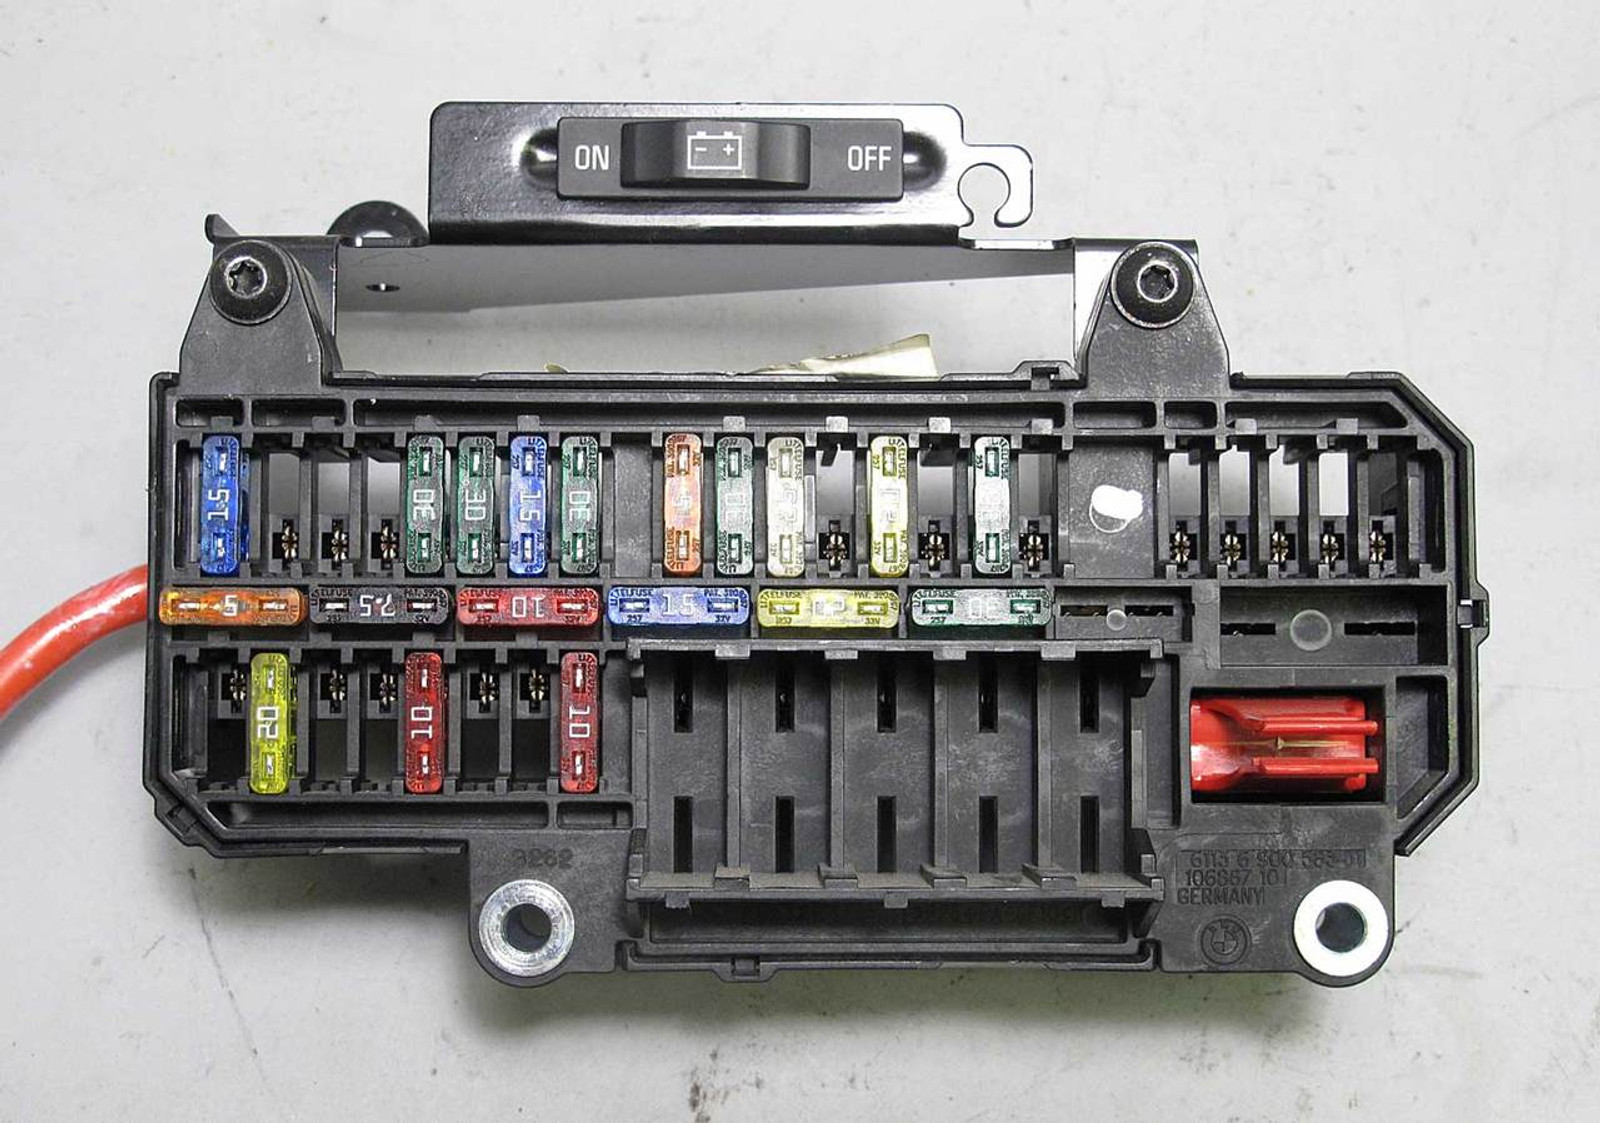 wrg 0912 1997 saturn fuse box locationbmw 740i fuse box location 19 [ 1280 x 898 Pixel ]